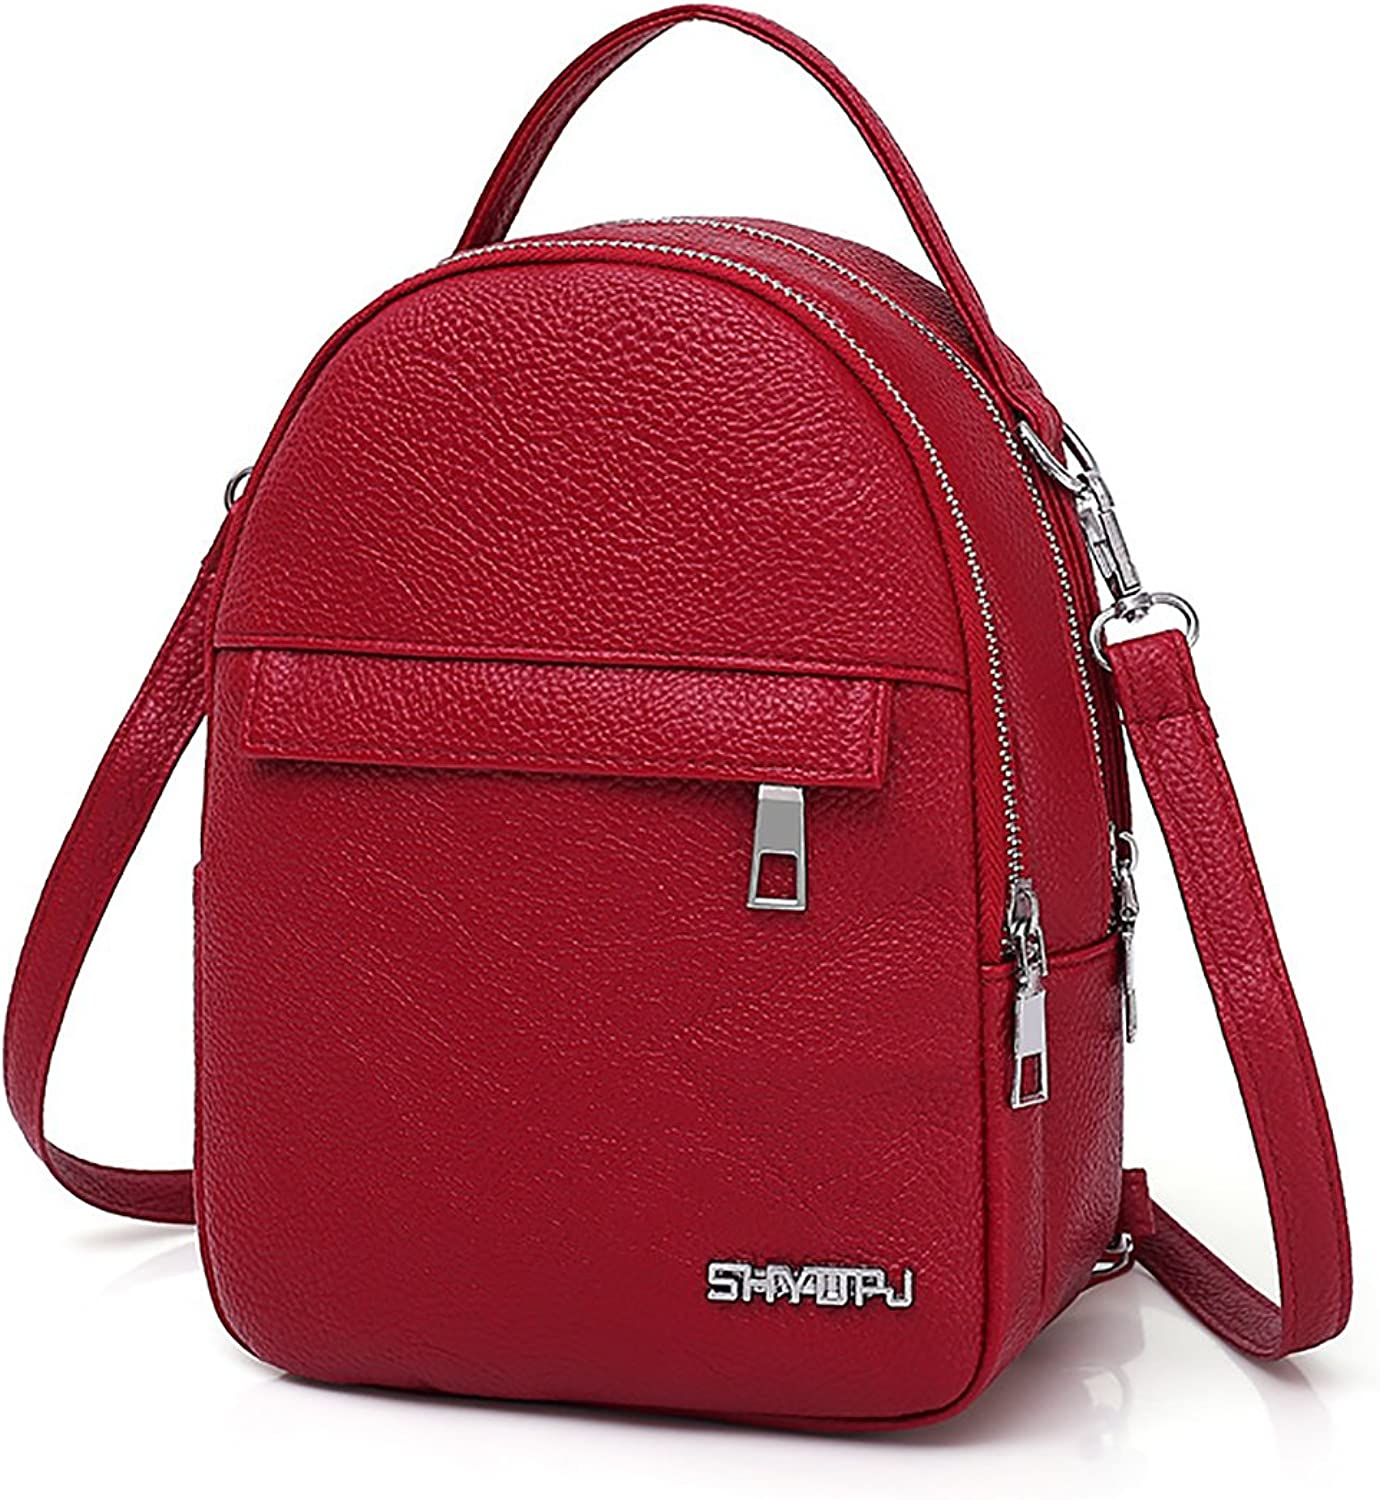 SDINAZ Lady's Mini Backpack in Pu leather with Headphone plug fashion small backpack for women girls black